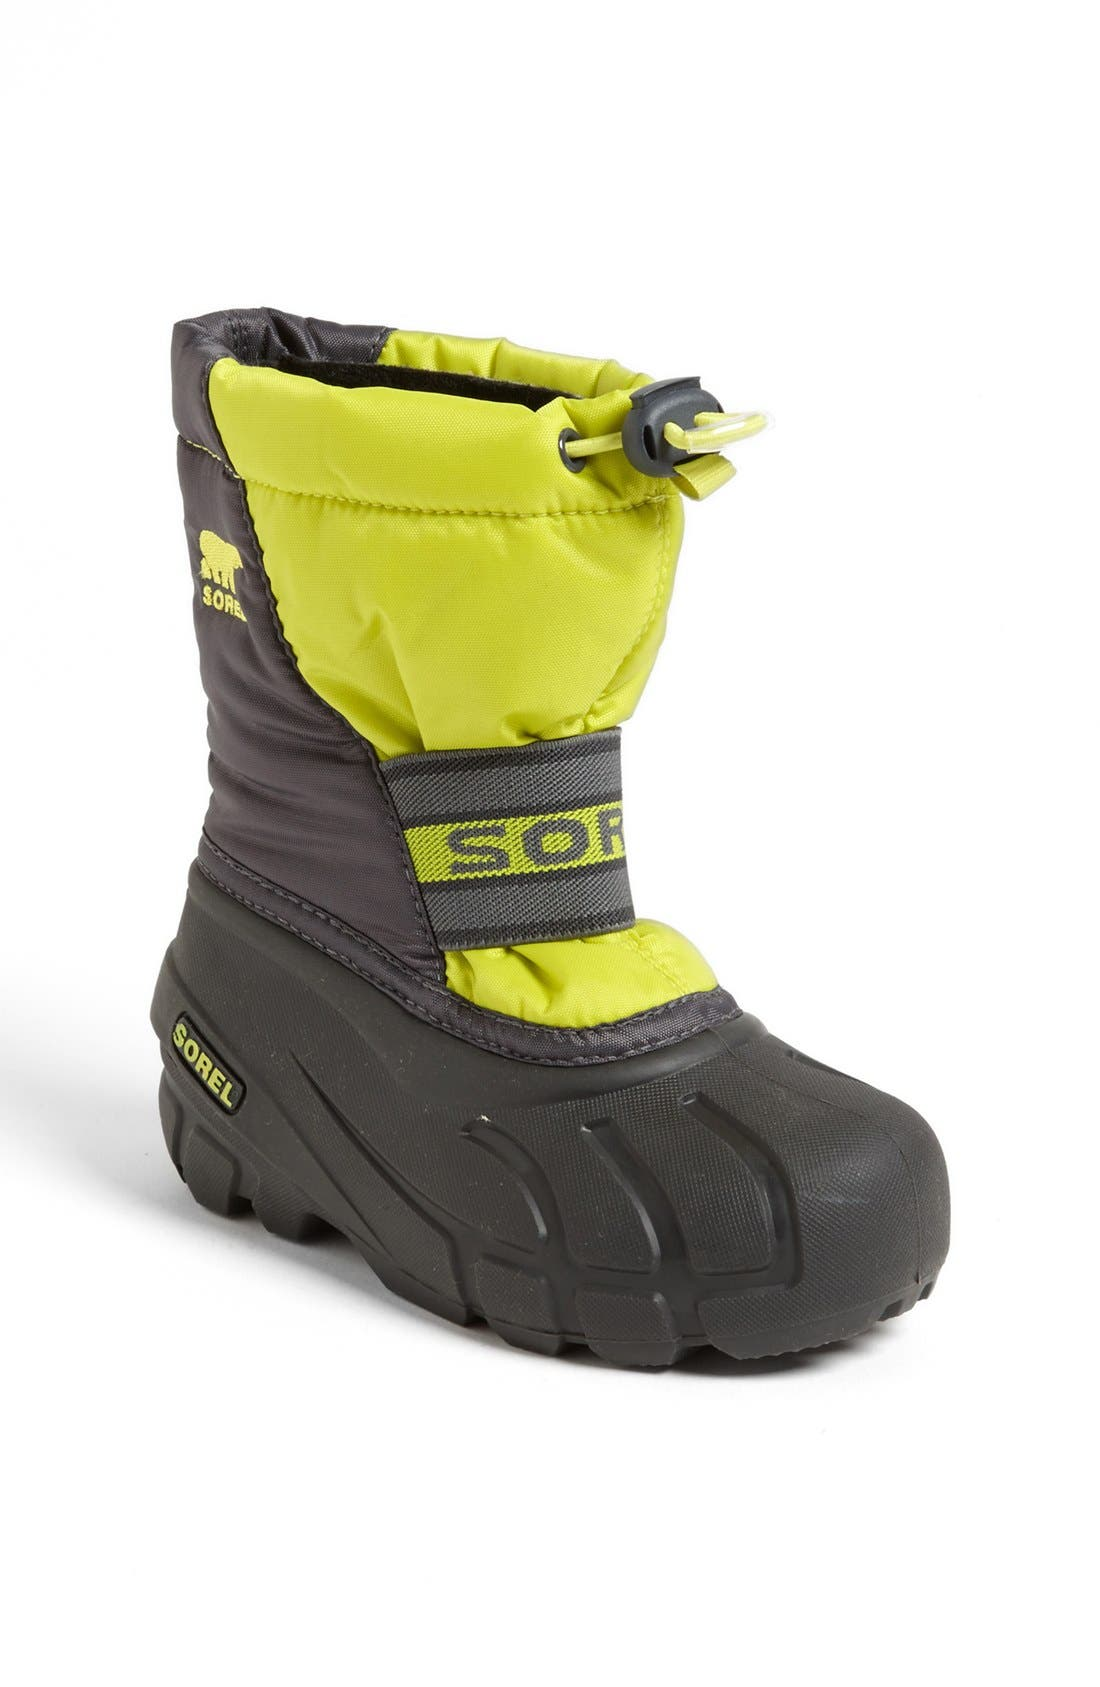 Main Image - SOREL 'Cub' Snow Boot (Toddler & Little Kid)